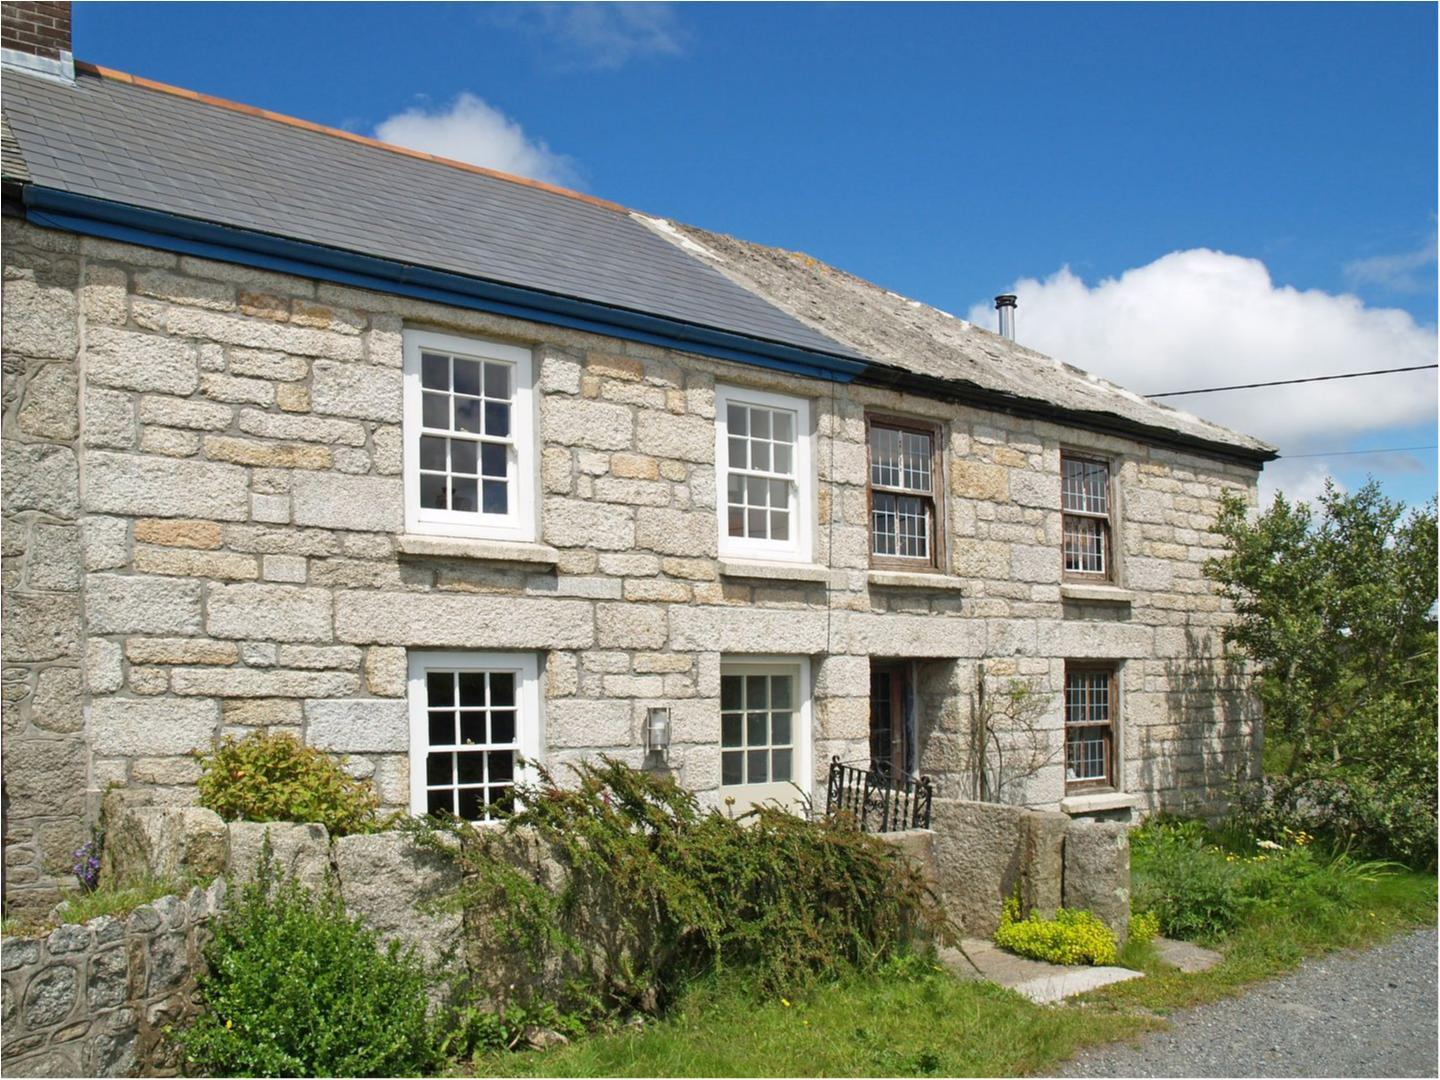 Holiday Cottage Reviews for 2 Halvosso Cottages - Self Catering in Penryn, Cornwall inc Scilly